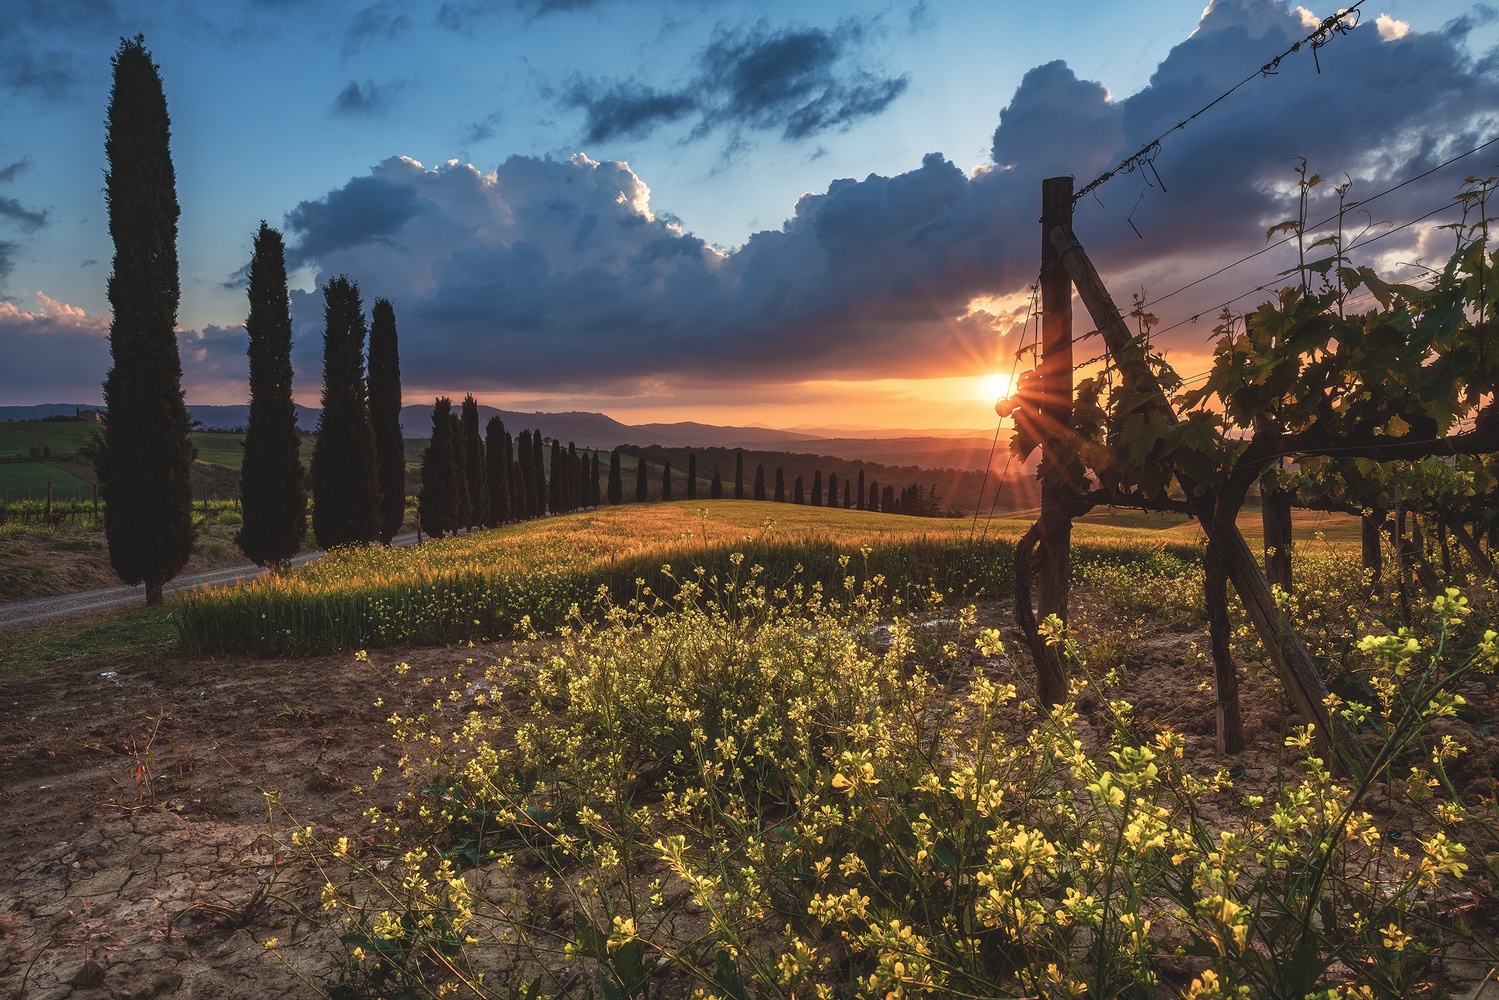 Tuscany - Colours of a Dream by Jean Claude Castor